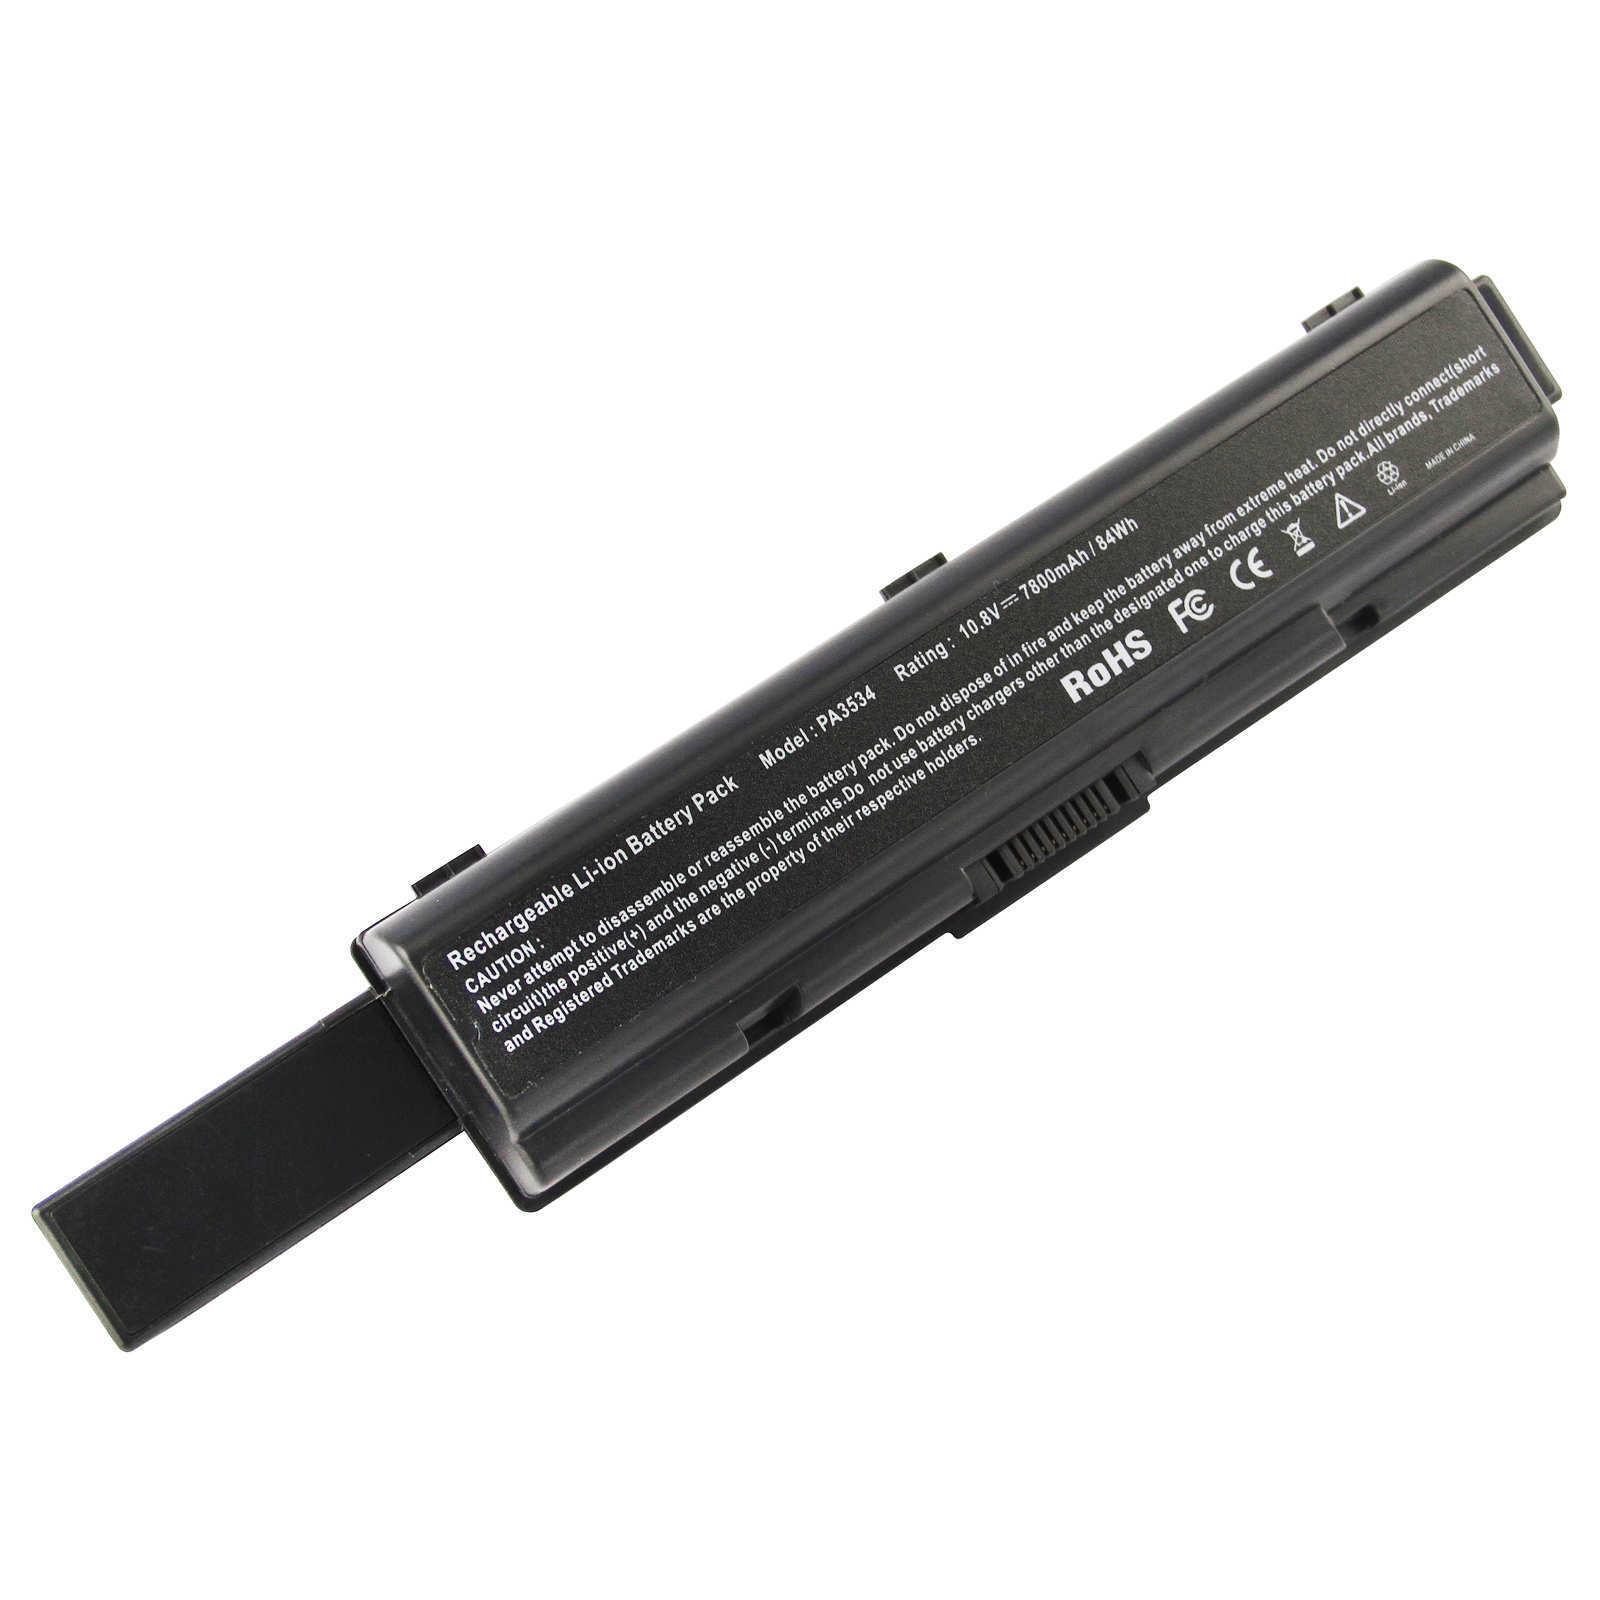 Replacement Toshiba Satellite A305-S6903 Battery